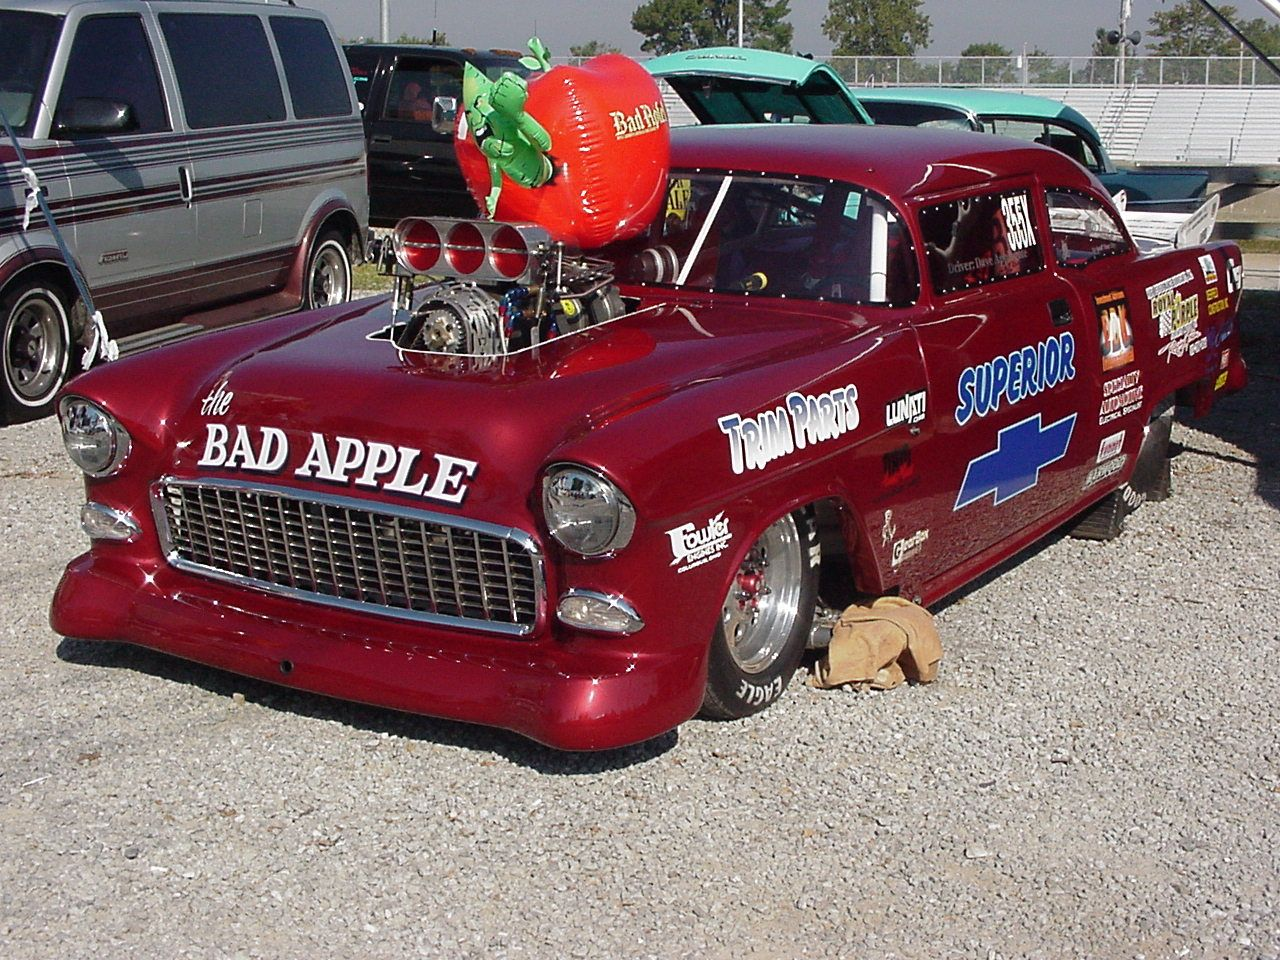 Pictures Of The Bad Apple 55 Chevy Can Be Seen On The Walls Ay Quaker Steak And Lube In Colrain Oio 55 Chevy Bad Apple Quaker Steak